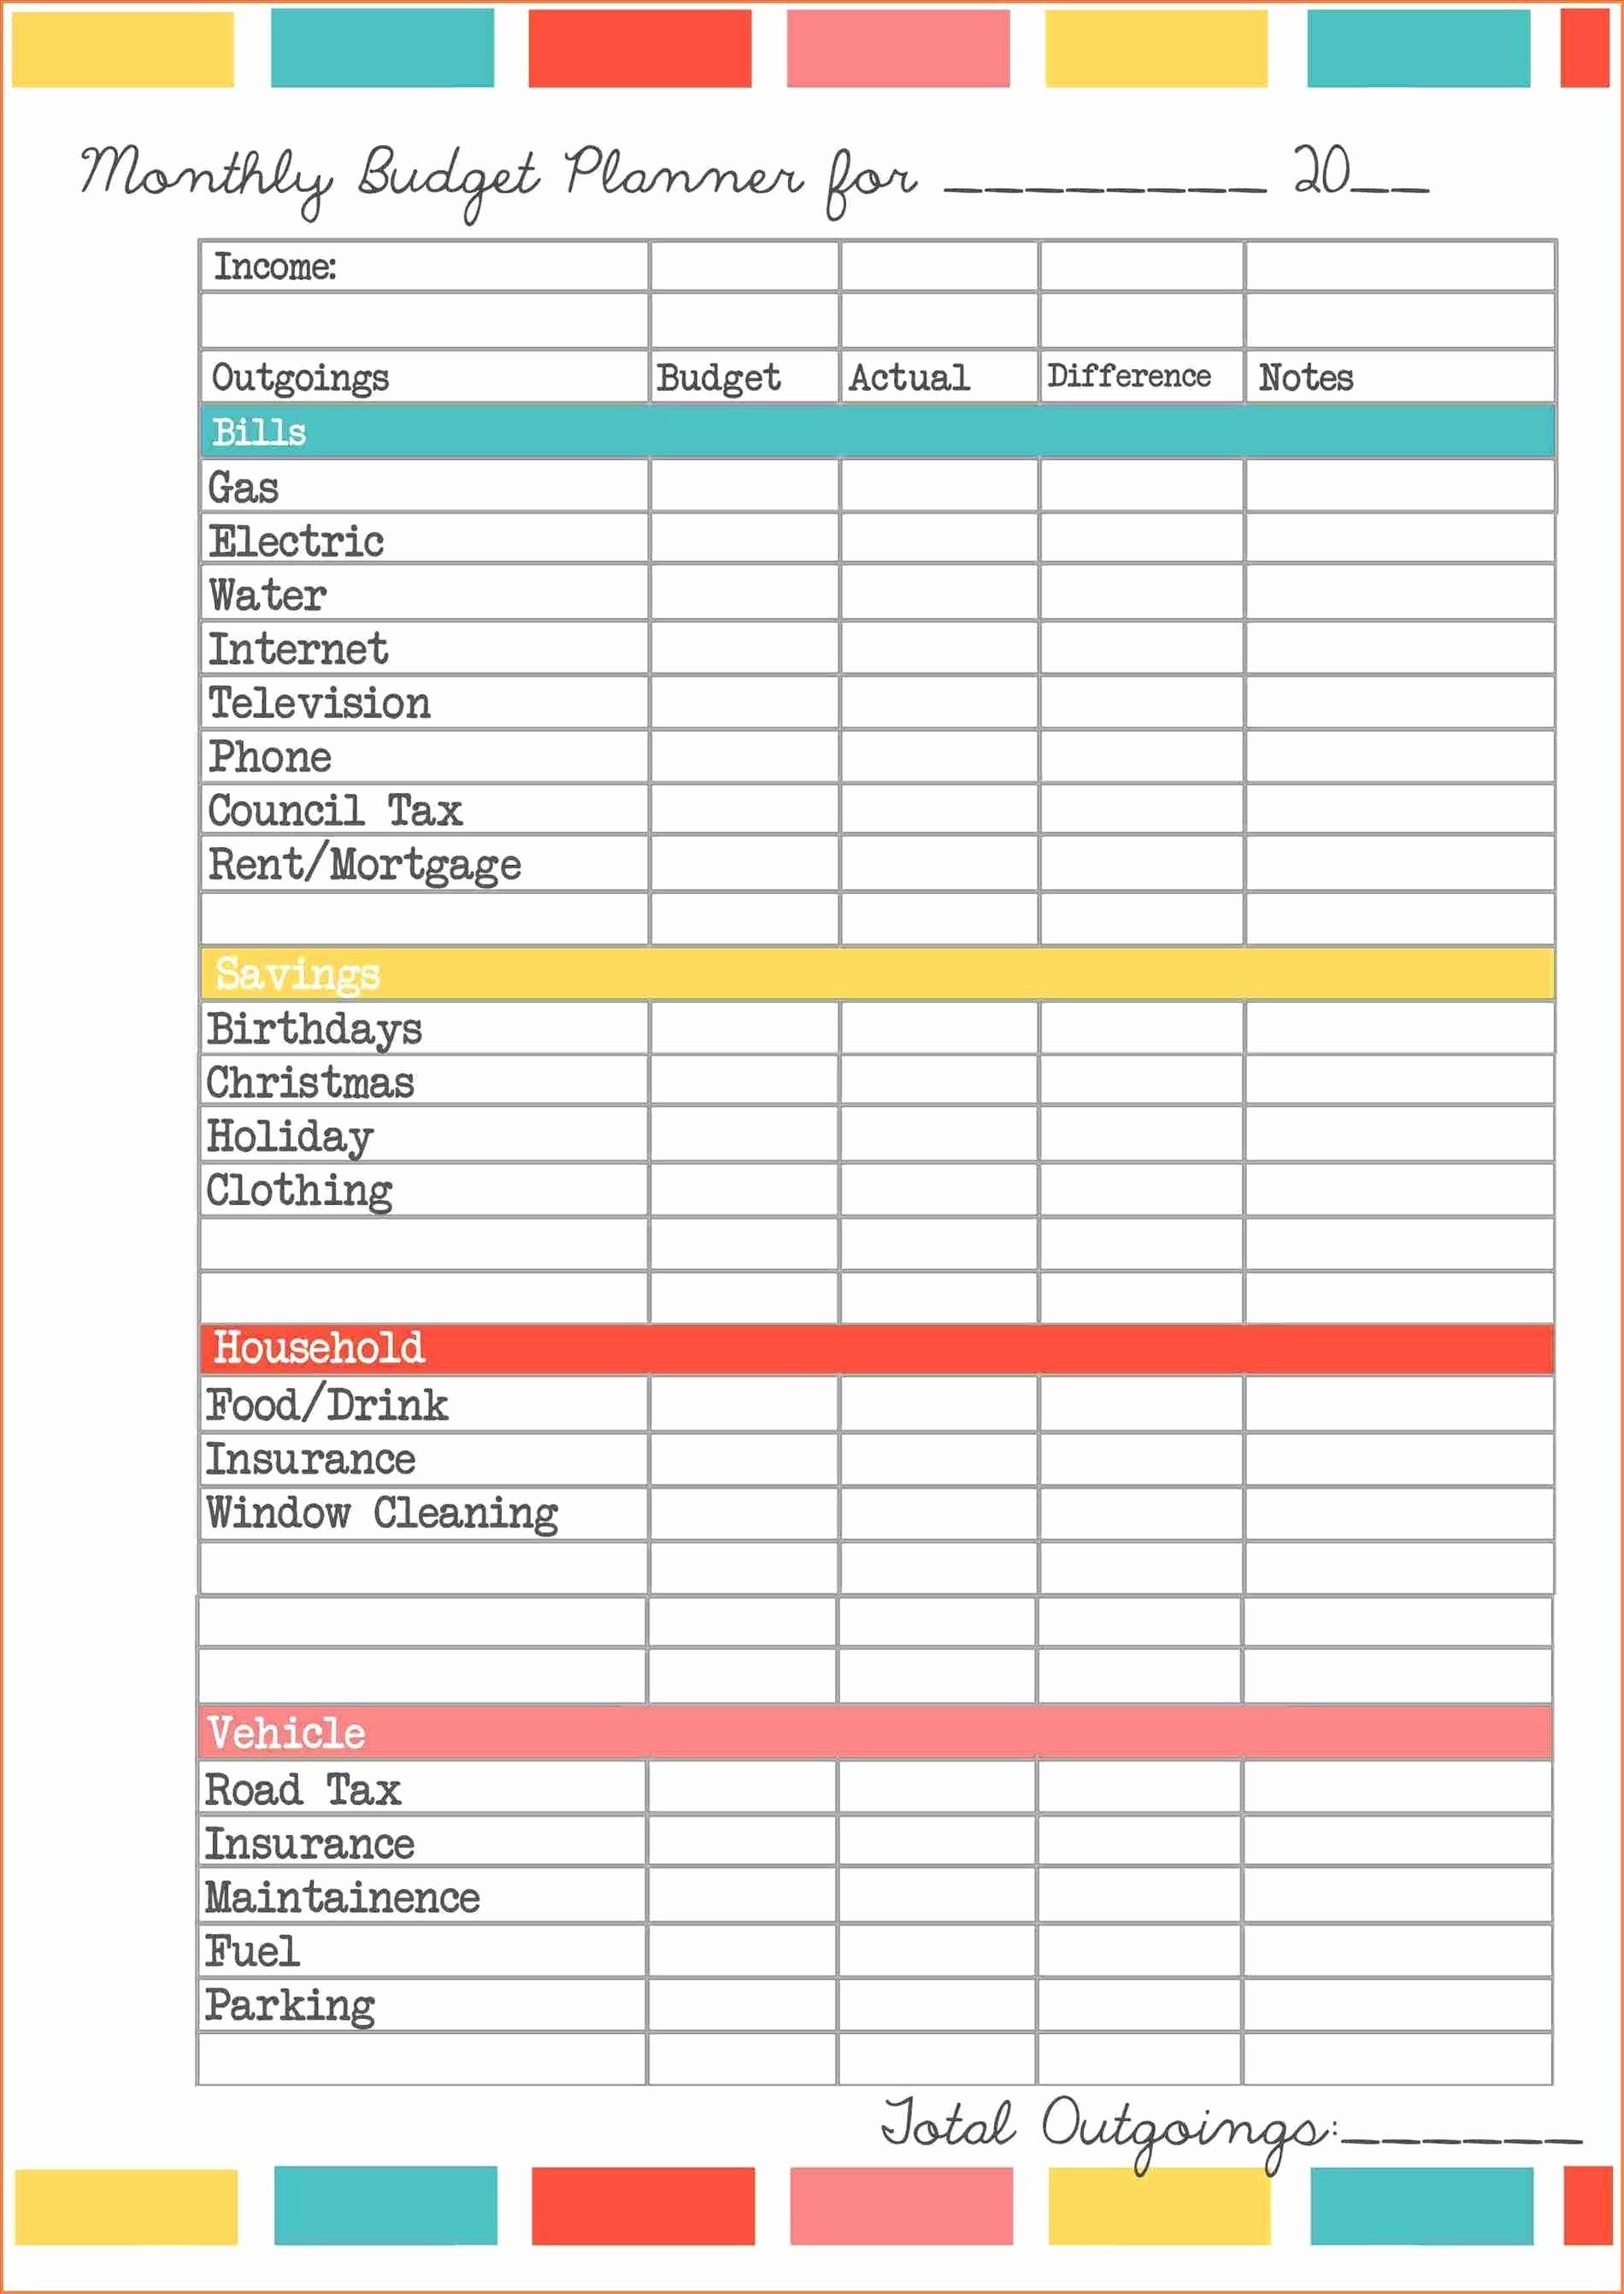 Bookkeeping Spreadsheets For Excel Free Accounting Spreadsheet Farm Intended For Bookkeeping Spreadsheet Templates Free